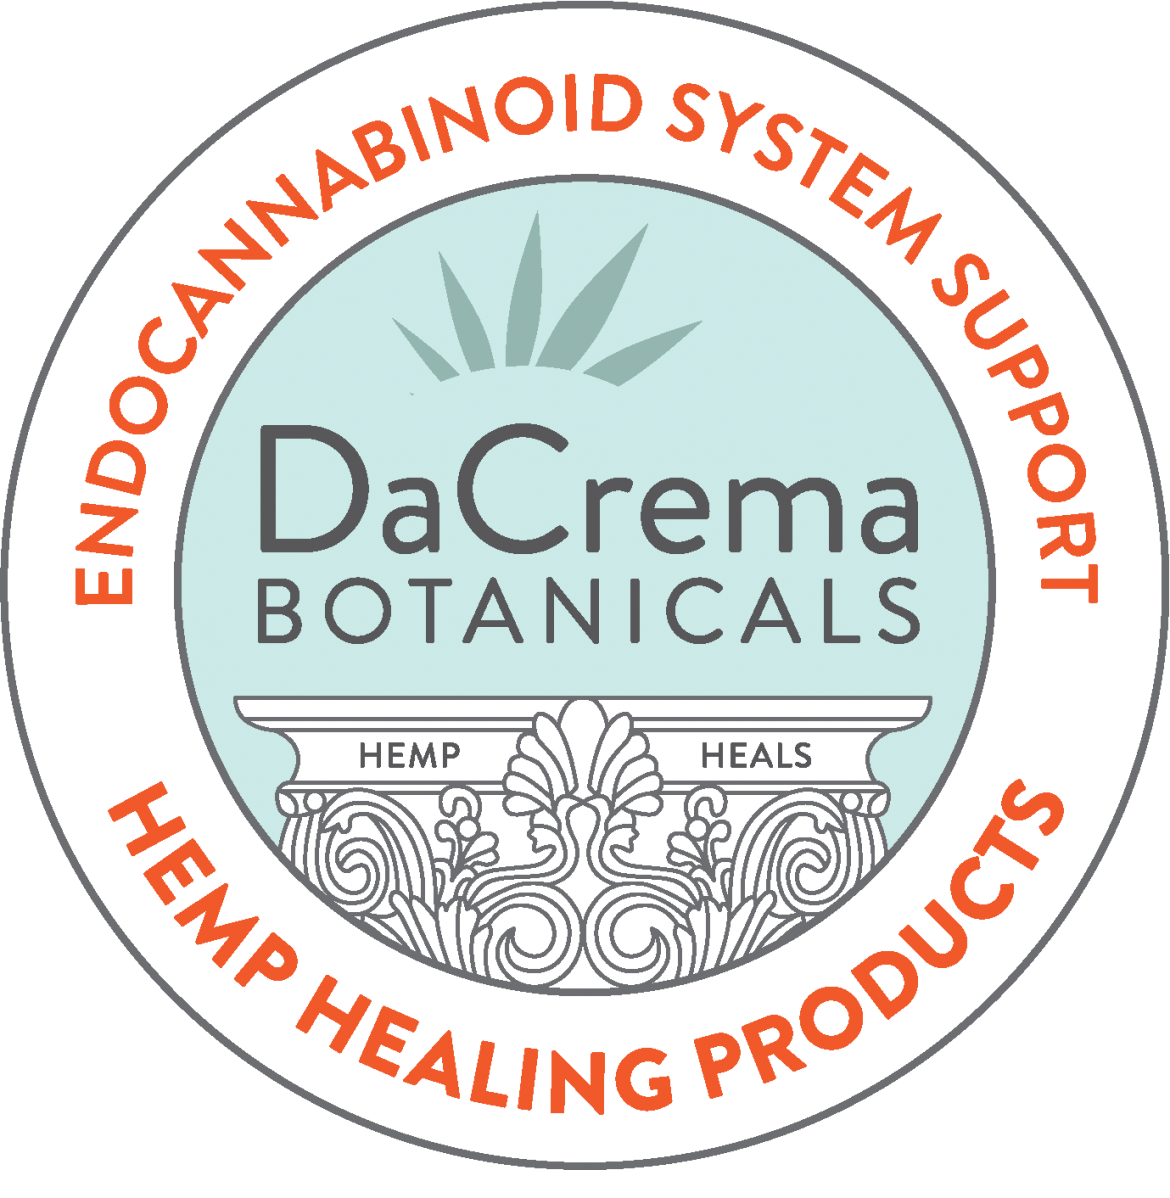 dacrema-botanicals-buy-quality-cbd-products.png